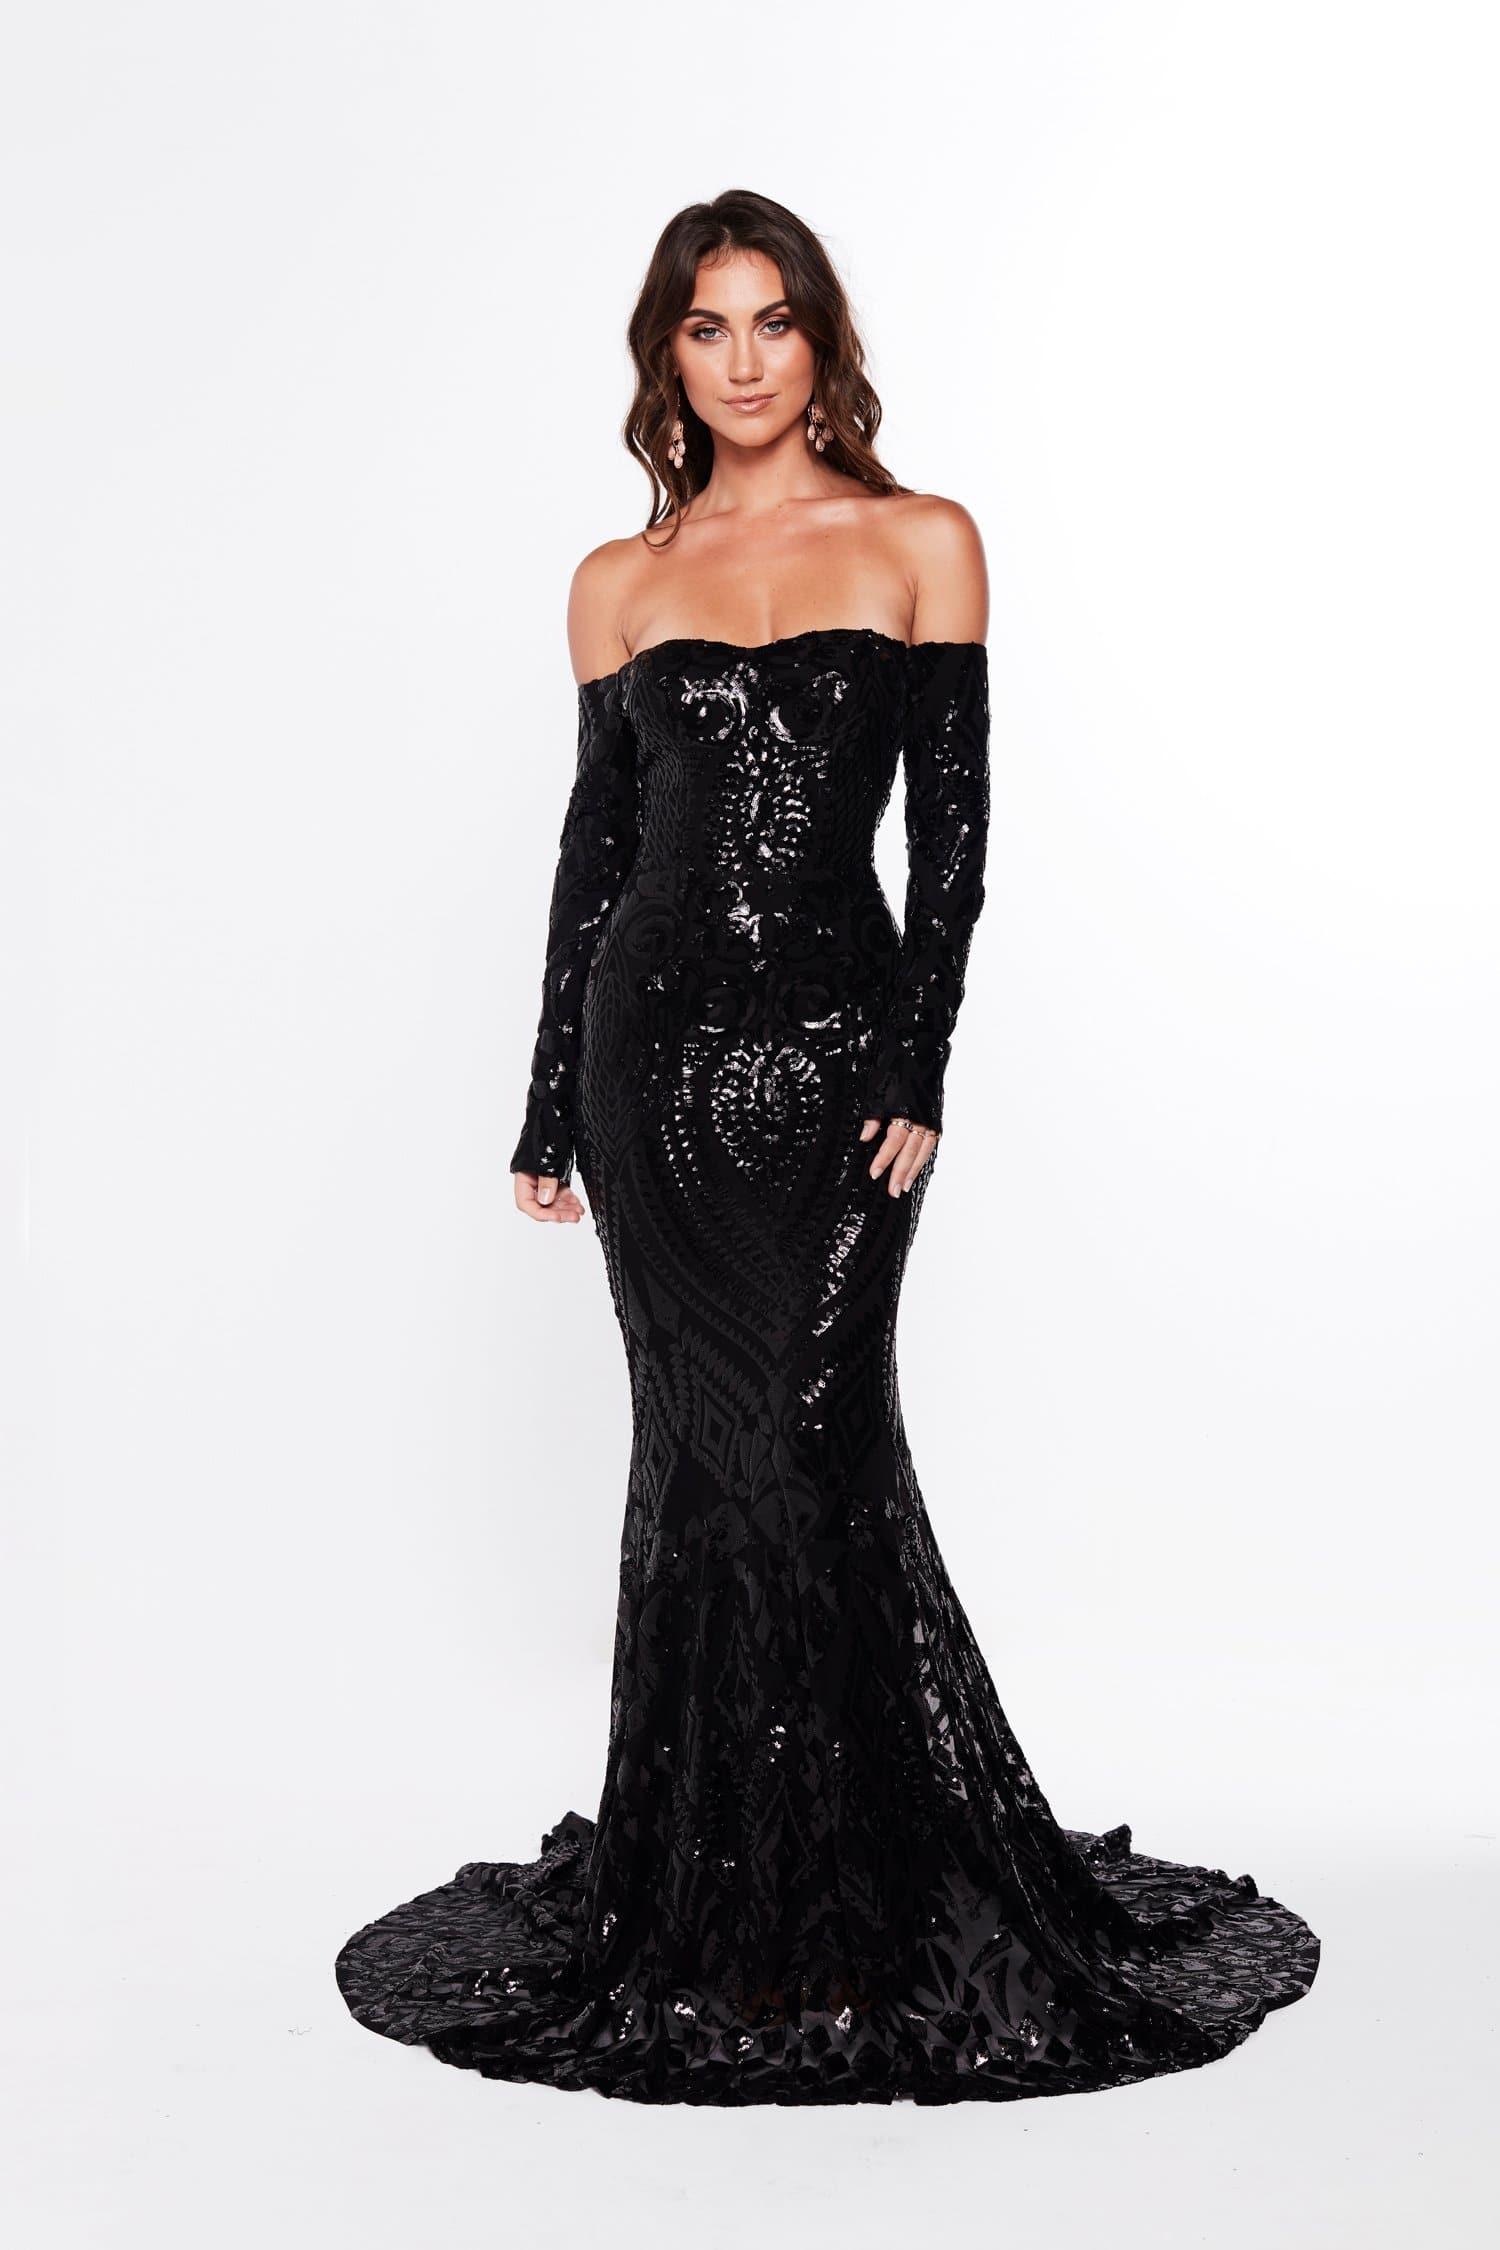 A&N Isidora - Black Sequin Gown with Long Sleeves and Mermaid Train